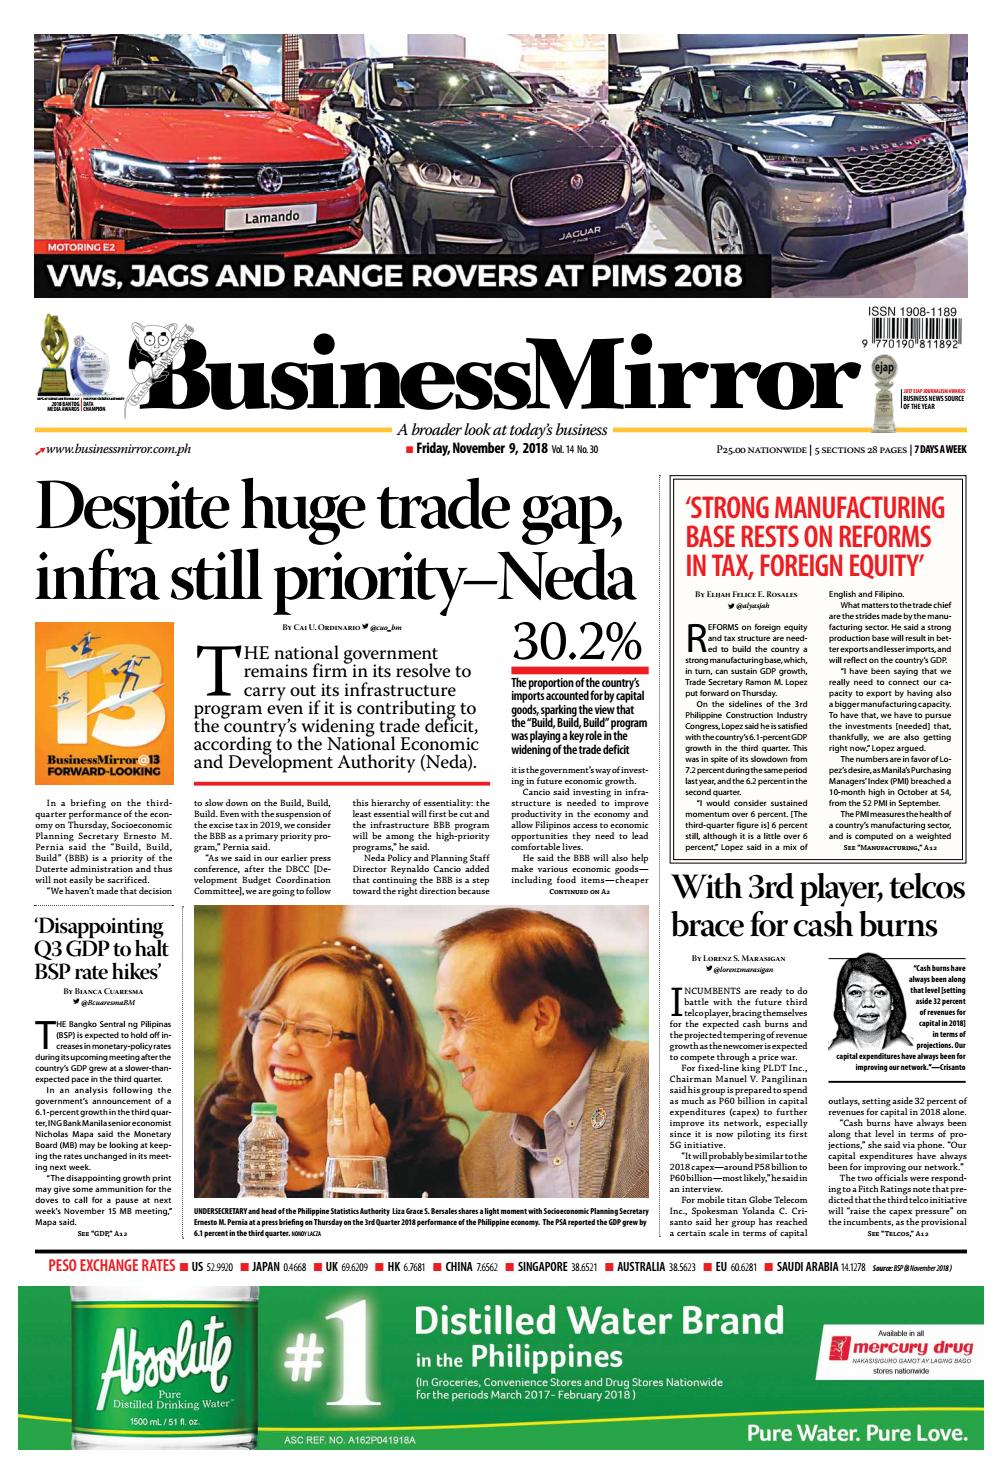 Businessmirror November 09, 2018 by BusinessMirror - issuu